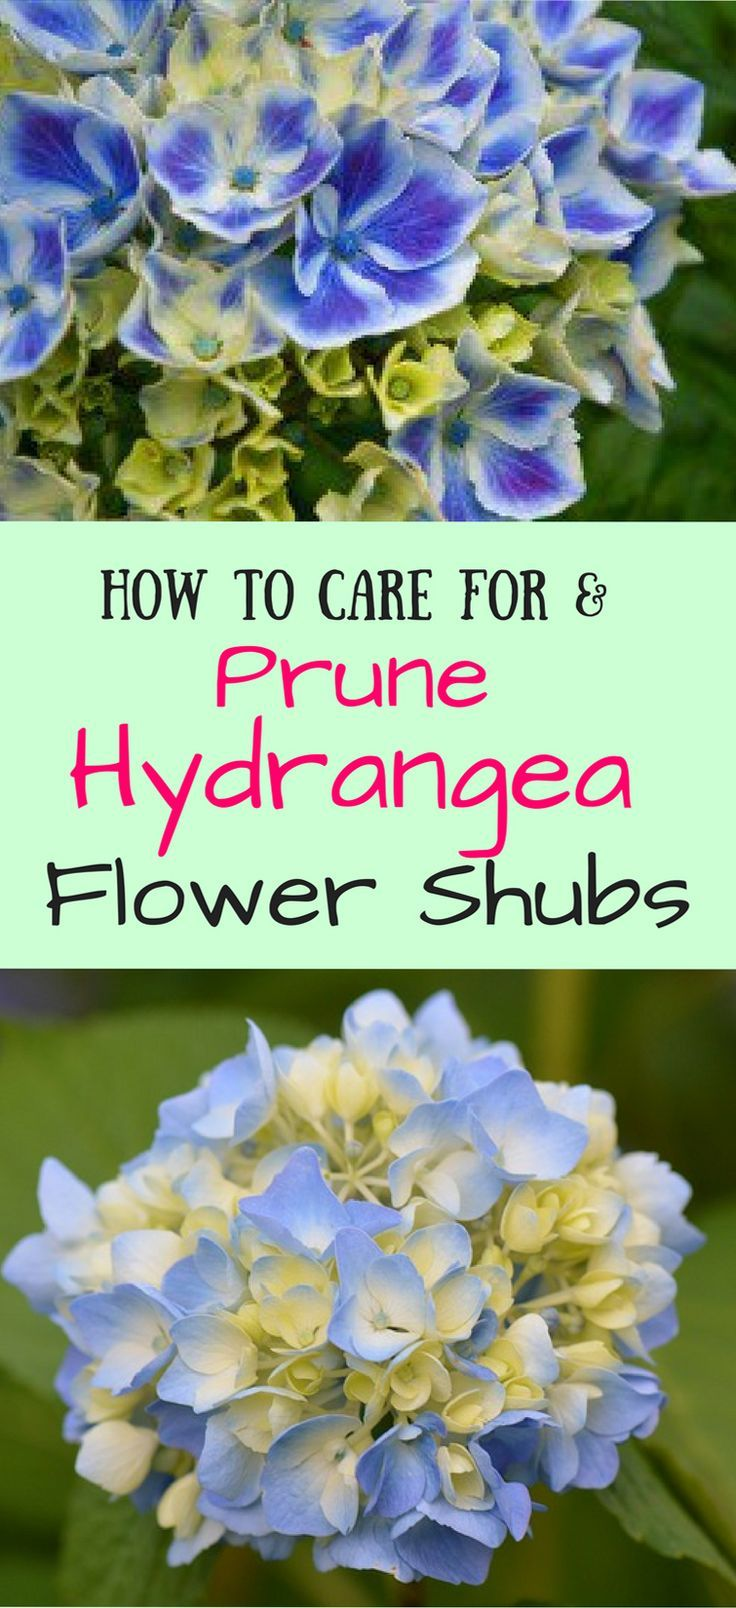 How to care for and prune hydrangea flower shrubs garden ideas how to care for and prune hydrangea flower shrubs save pin to revisit later izmirmasajfo